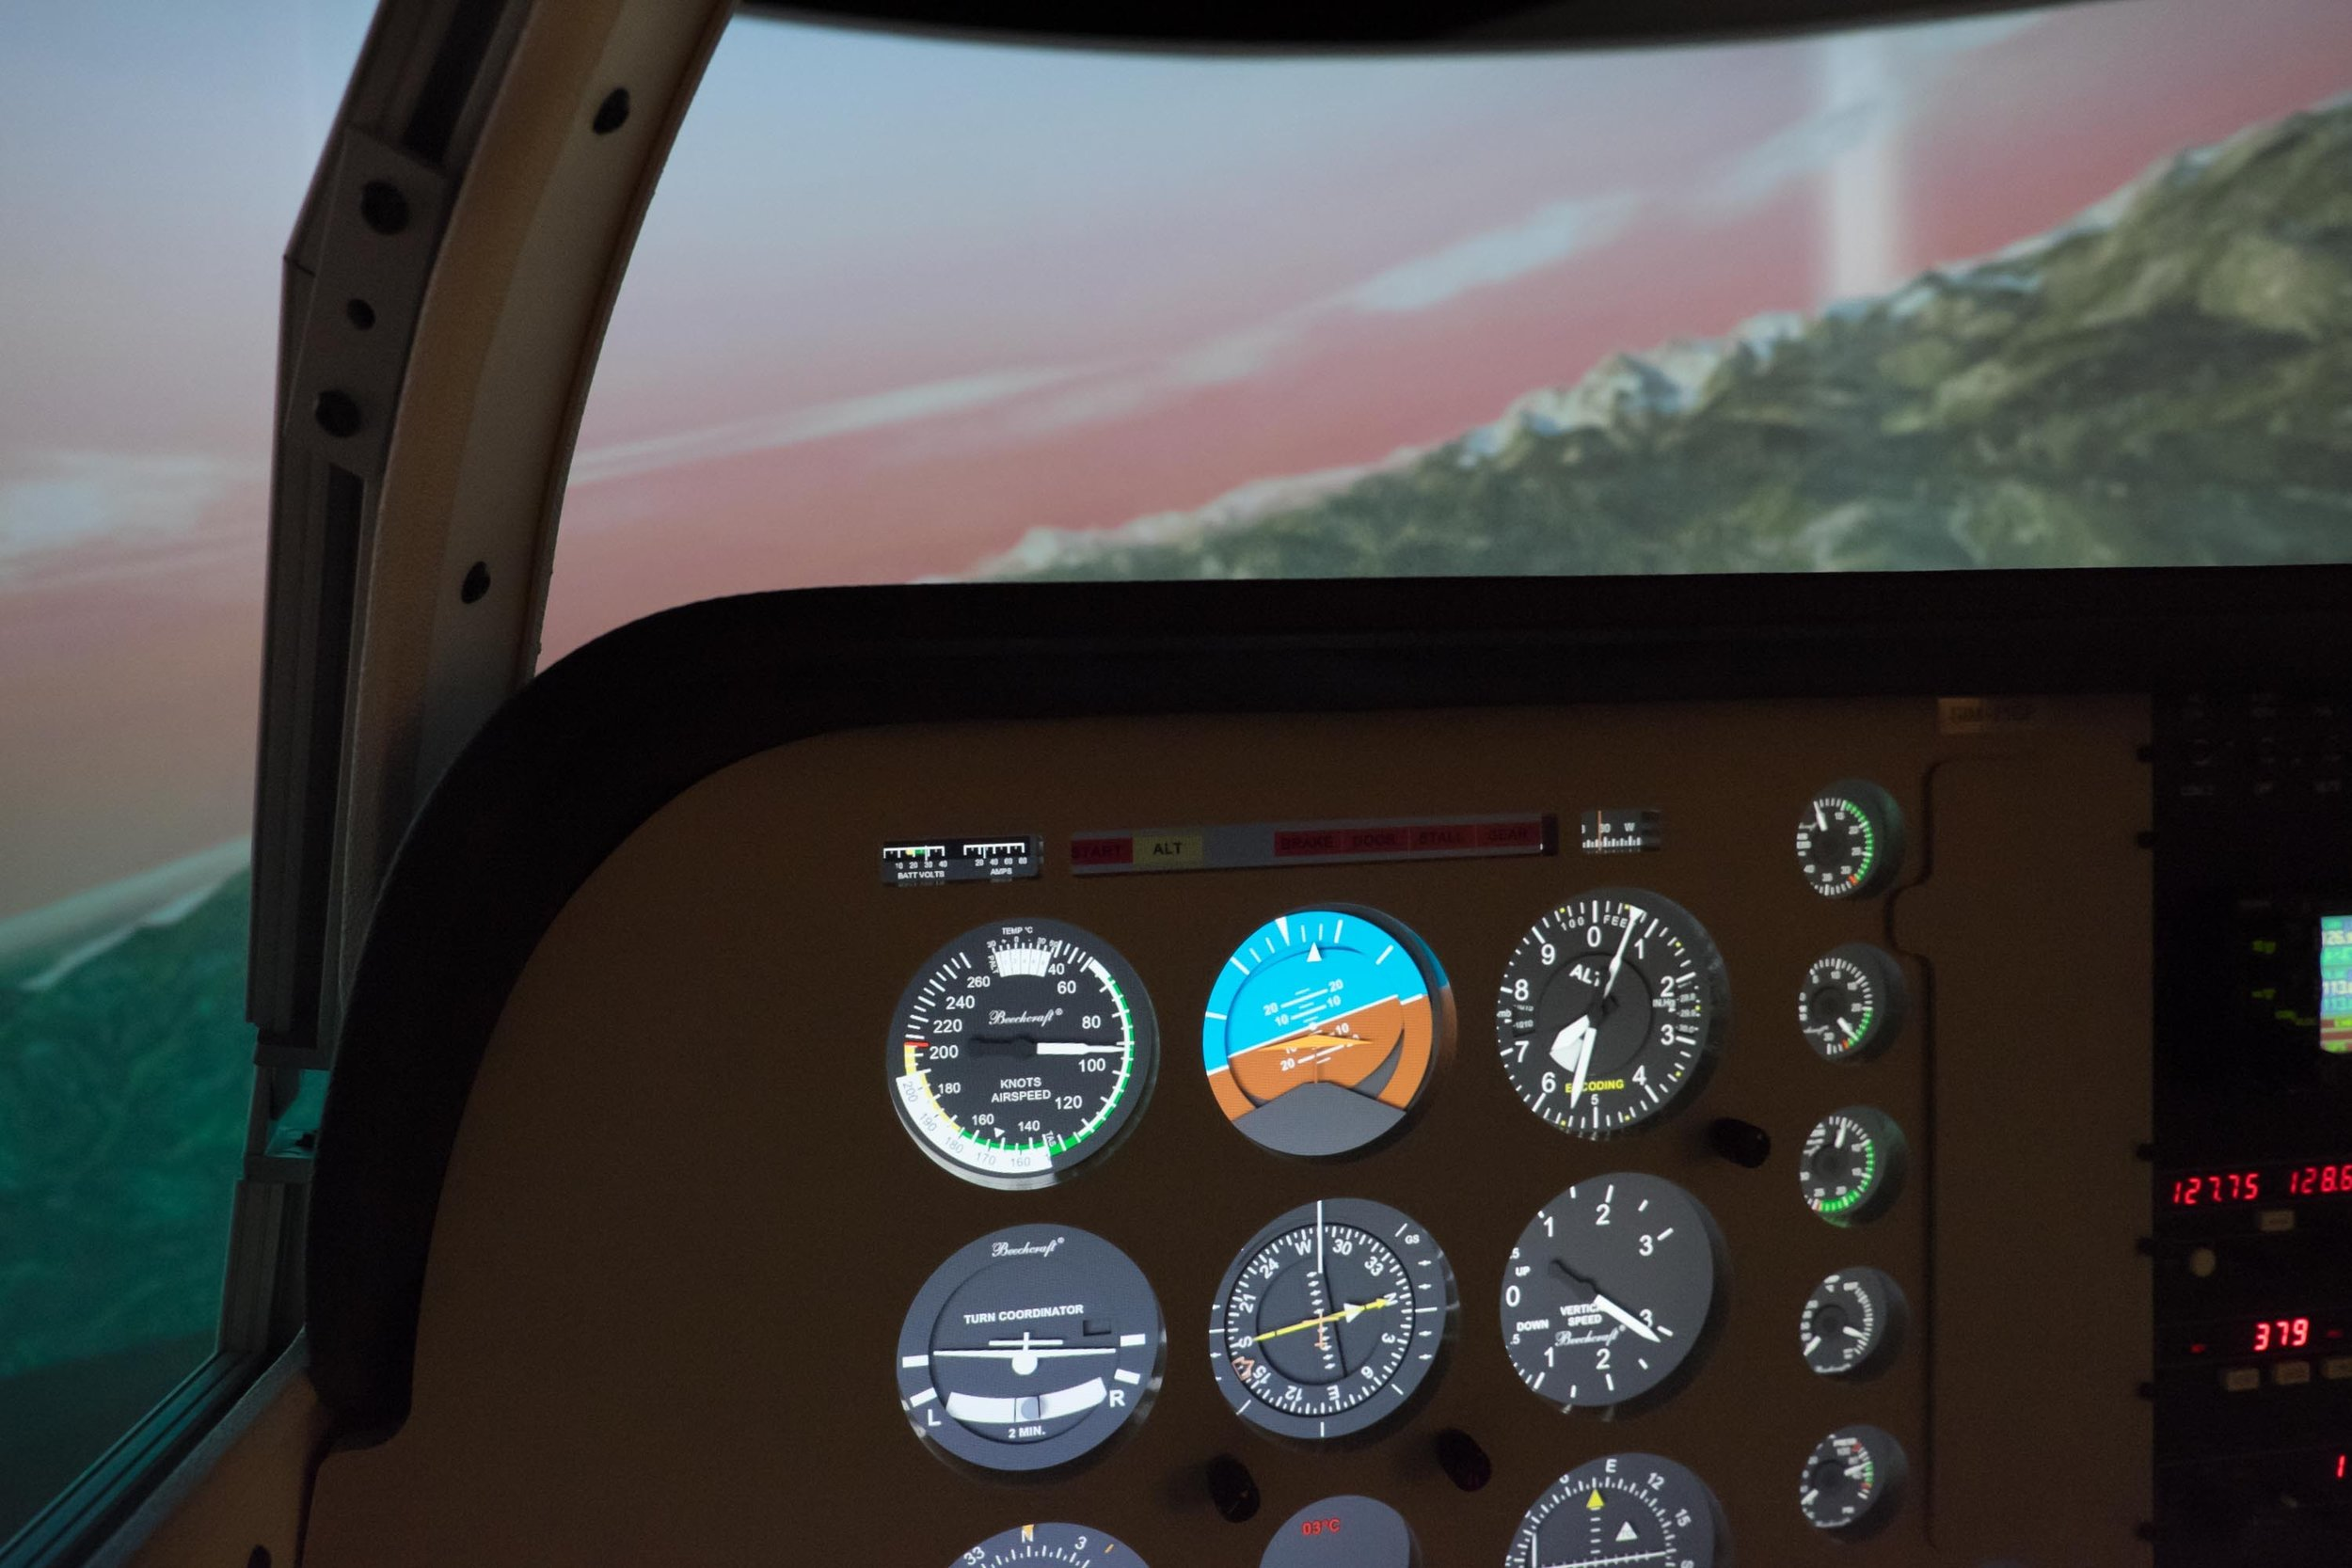 - ‣ Complete instrument panel‣ Functional radios and transponder‣ 1G-650,1G-750, and 1G-1000 are all available avionics options.‣ Single or multi-engine instrument display‣ High fidelity force feedback control loading provides highly realistic control yoke feel